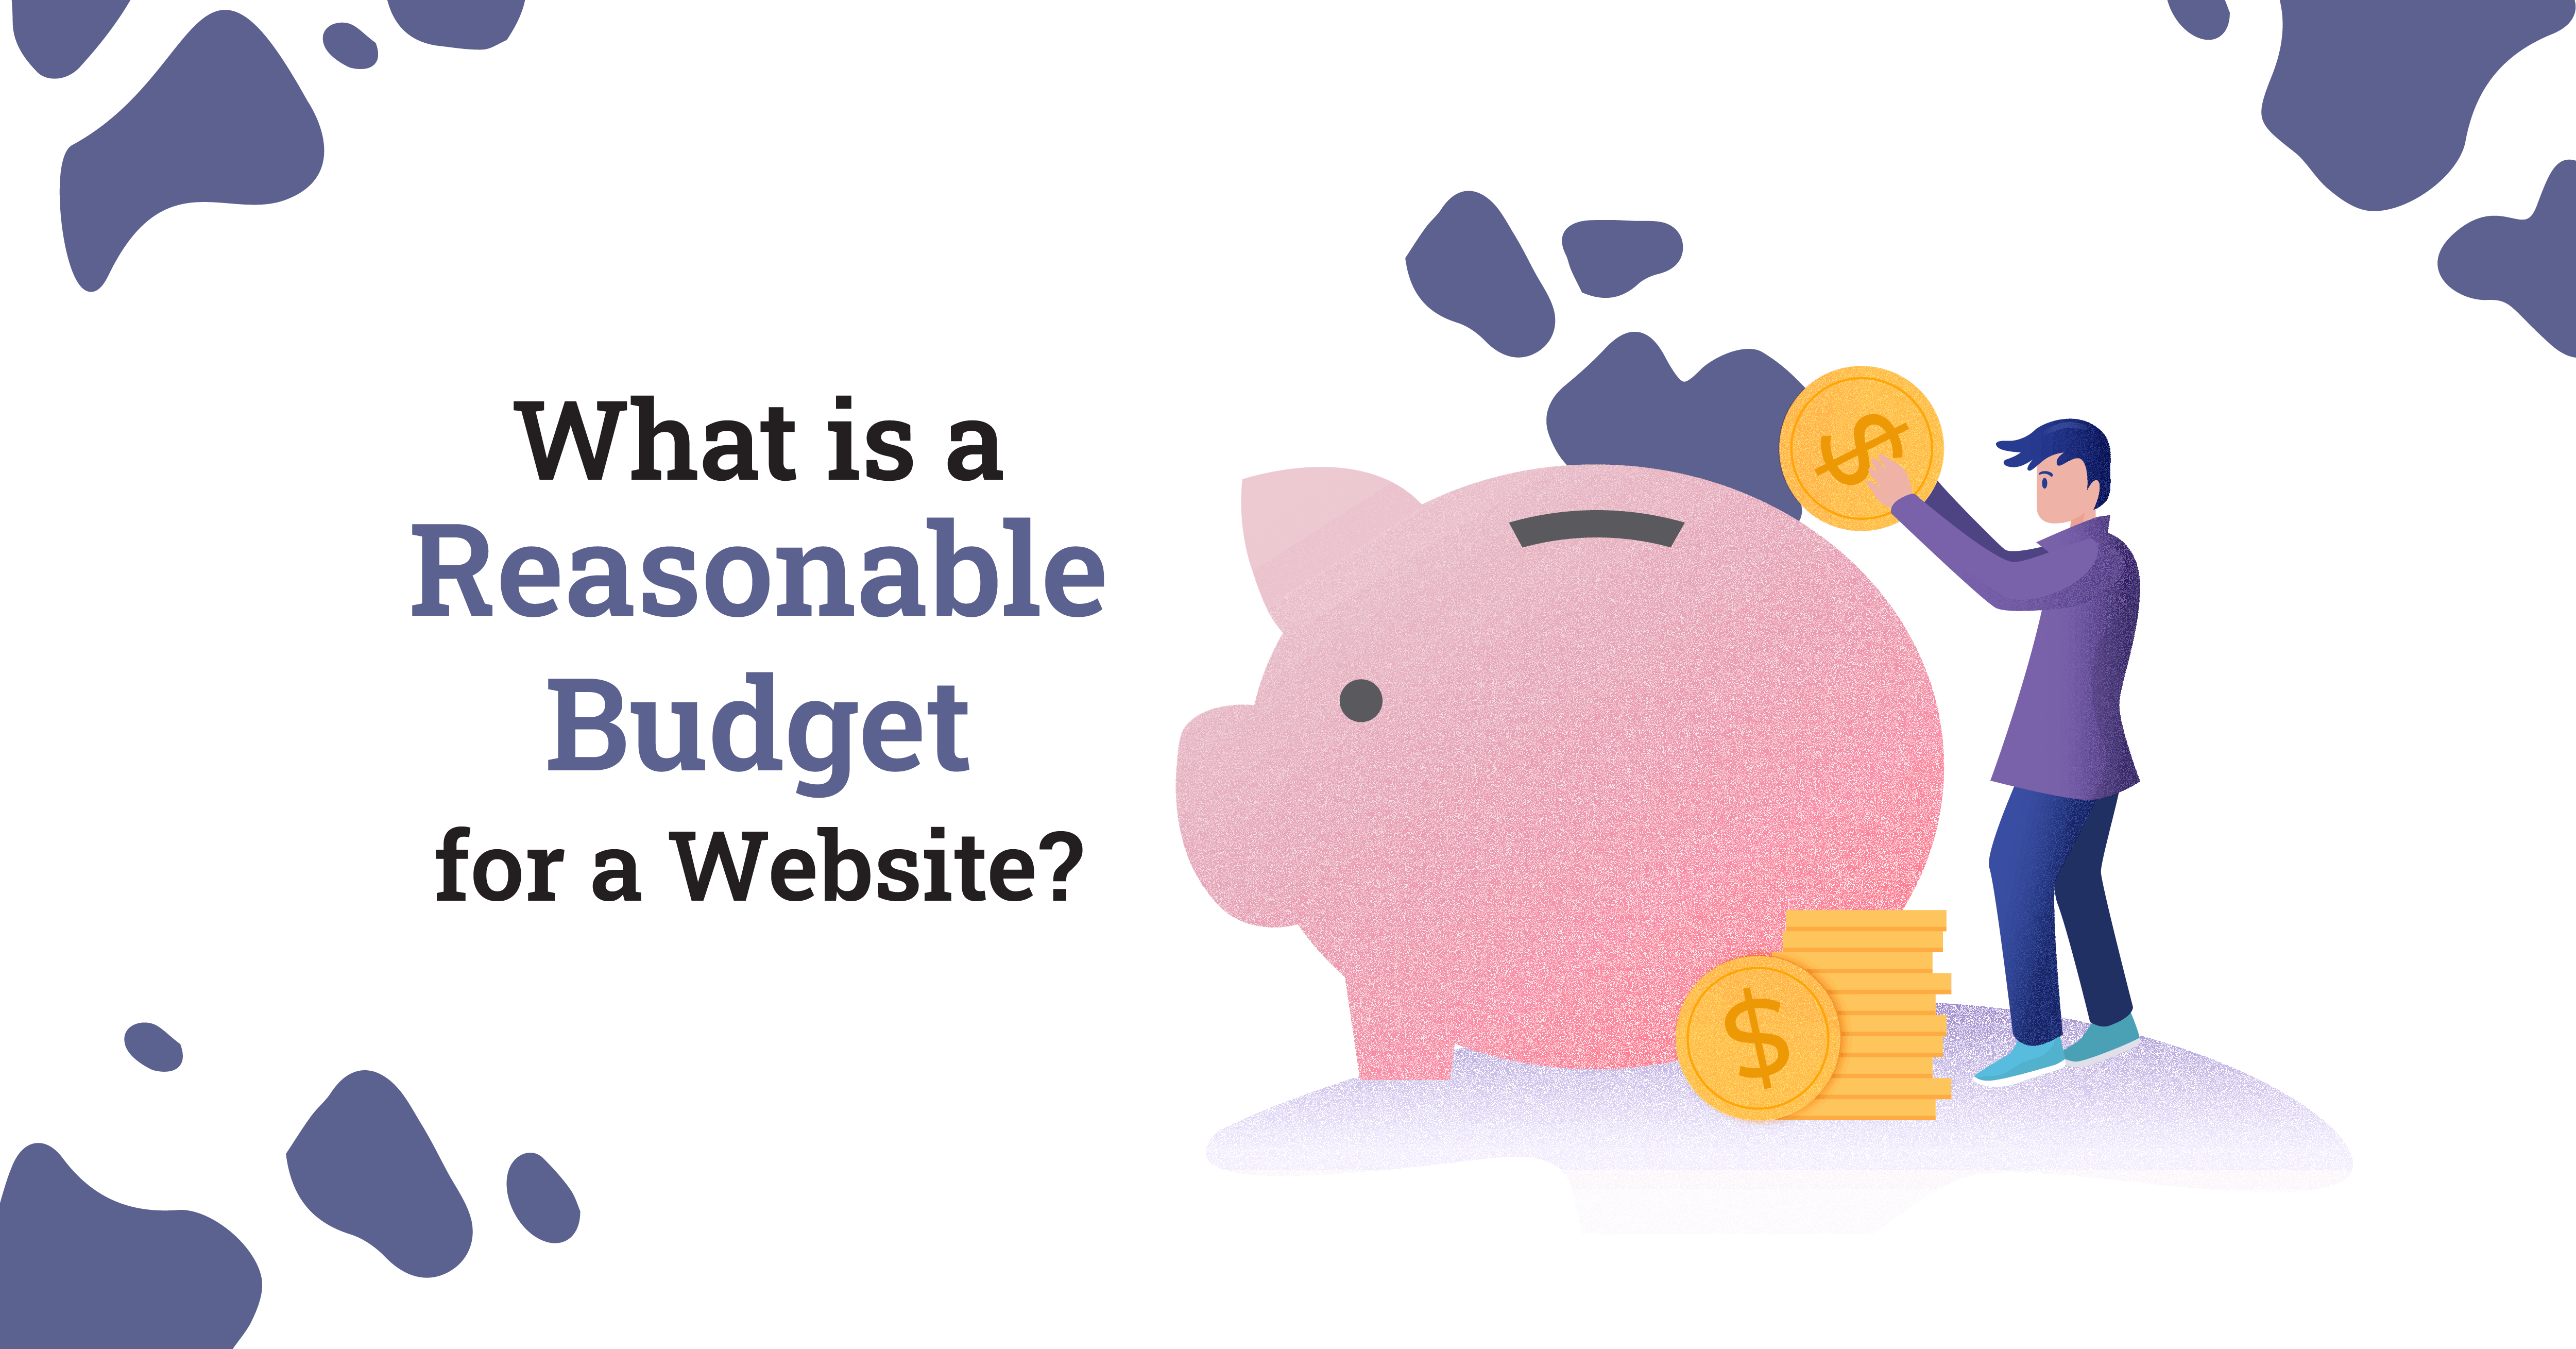 What is a reasonable budget for a website?